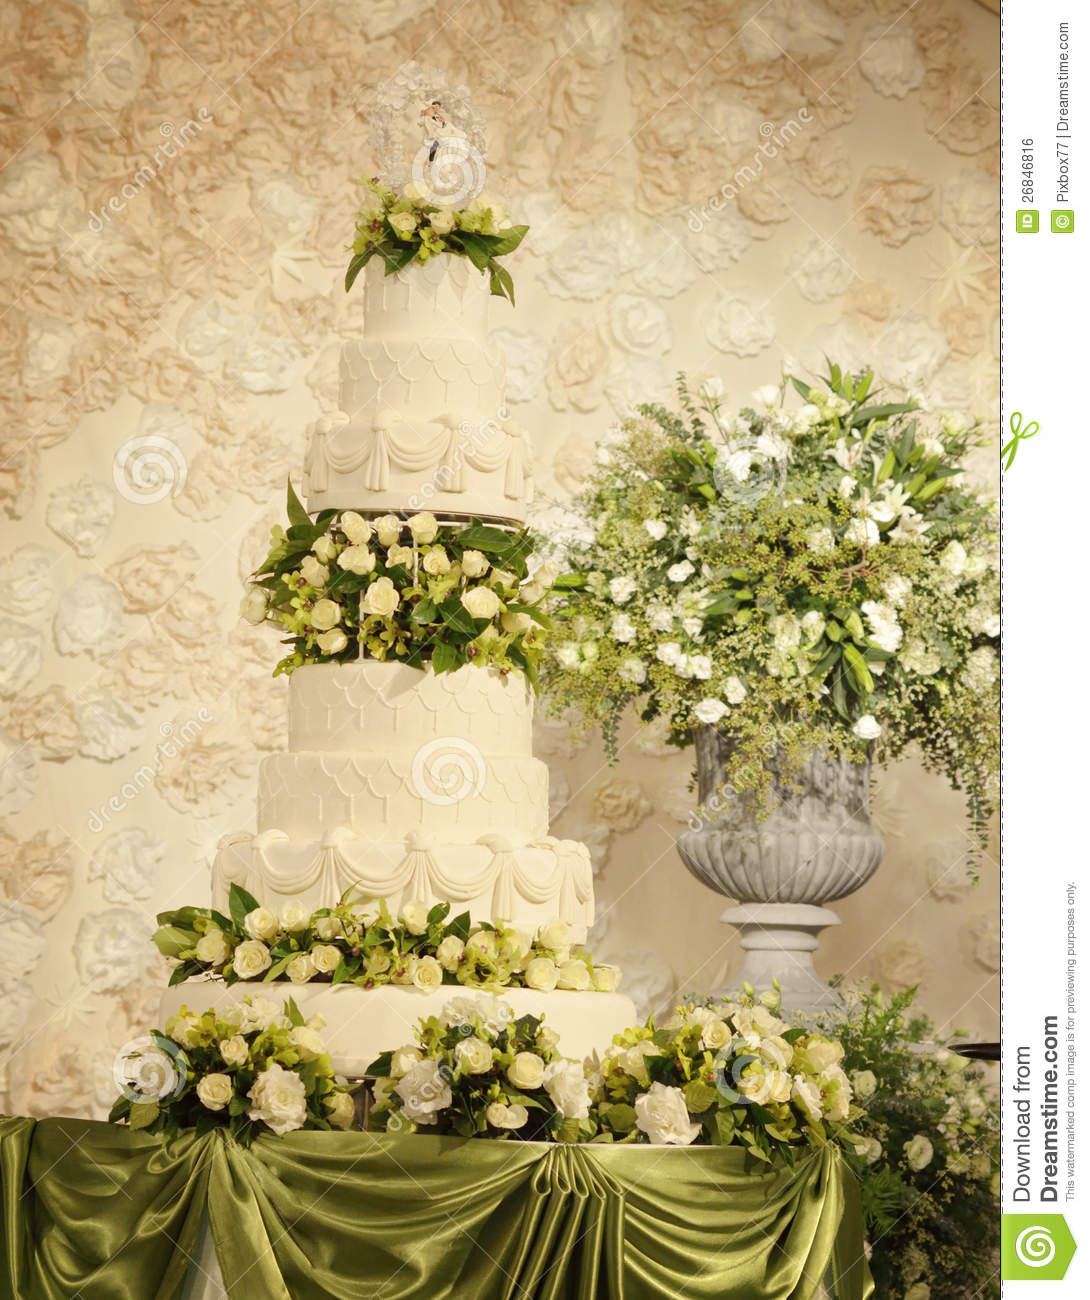 wedding cake flower decoration ideas wedding cake with flower decorations stock photo image 22666